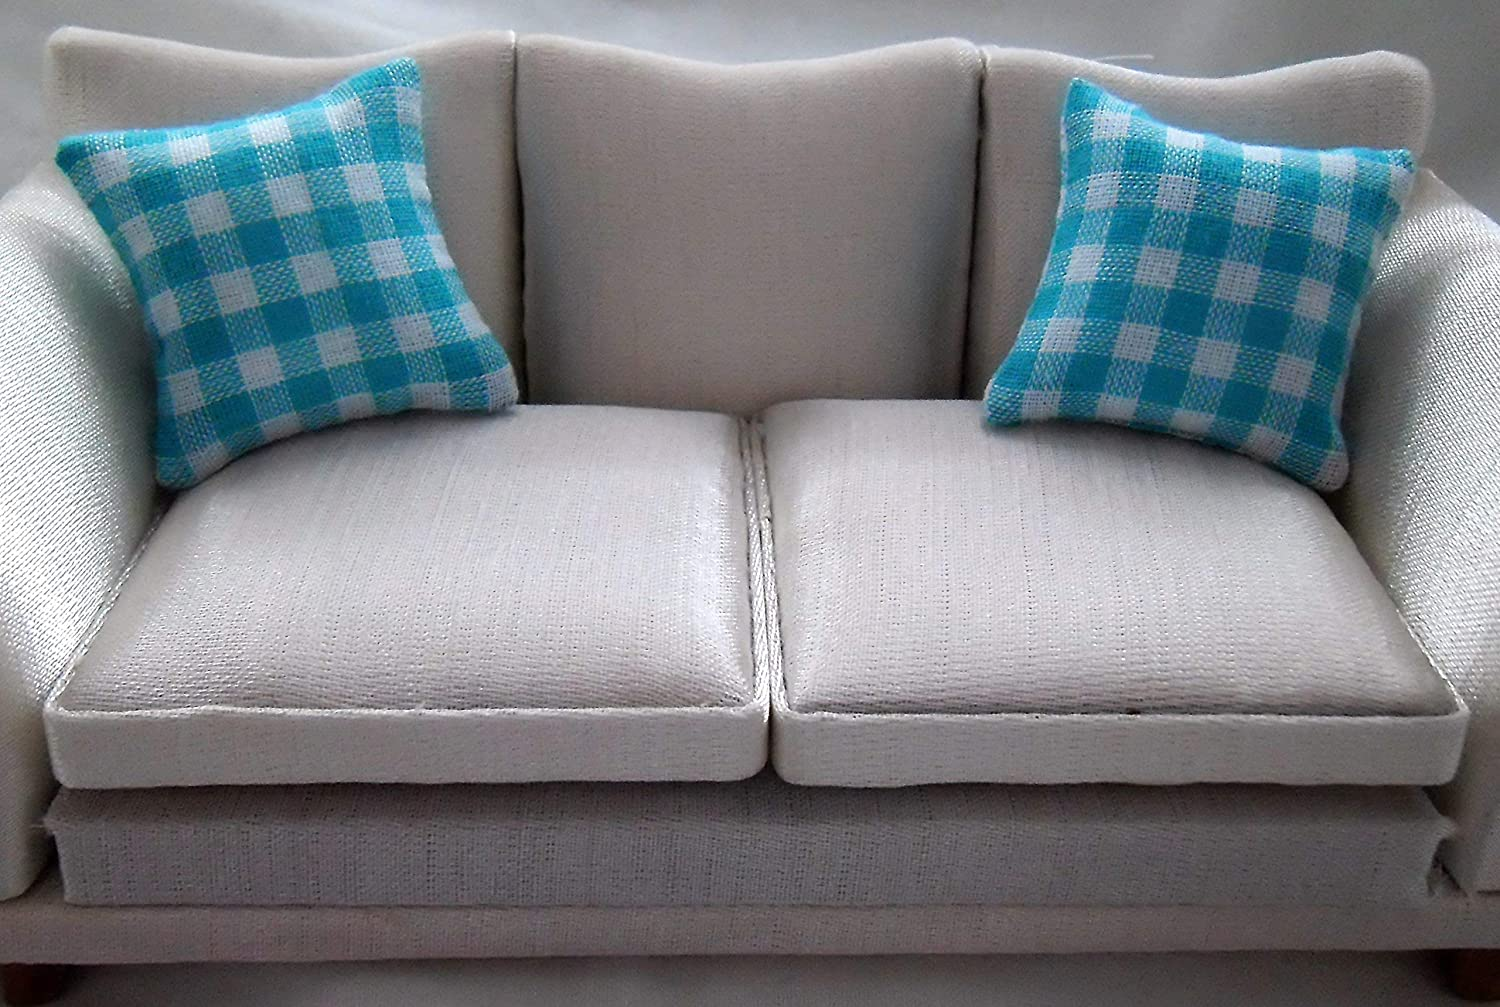 1//12th Scale Dolls House Cushions Turquoise /& White Check Pattern